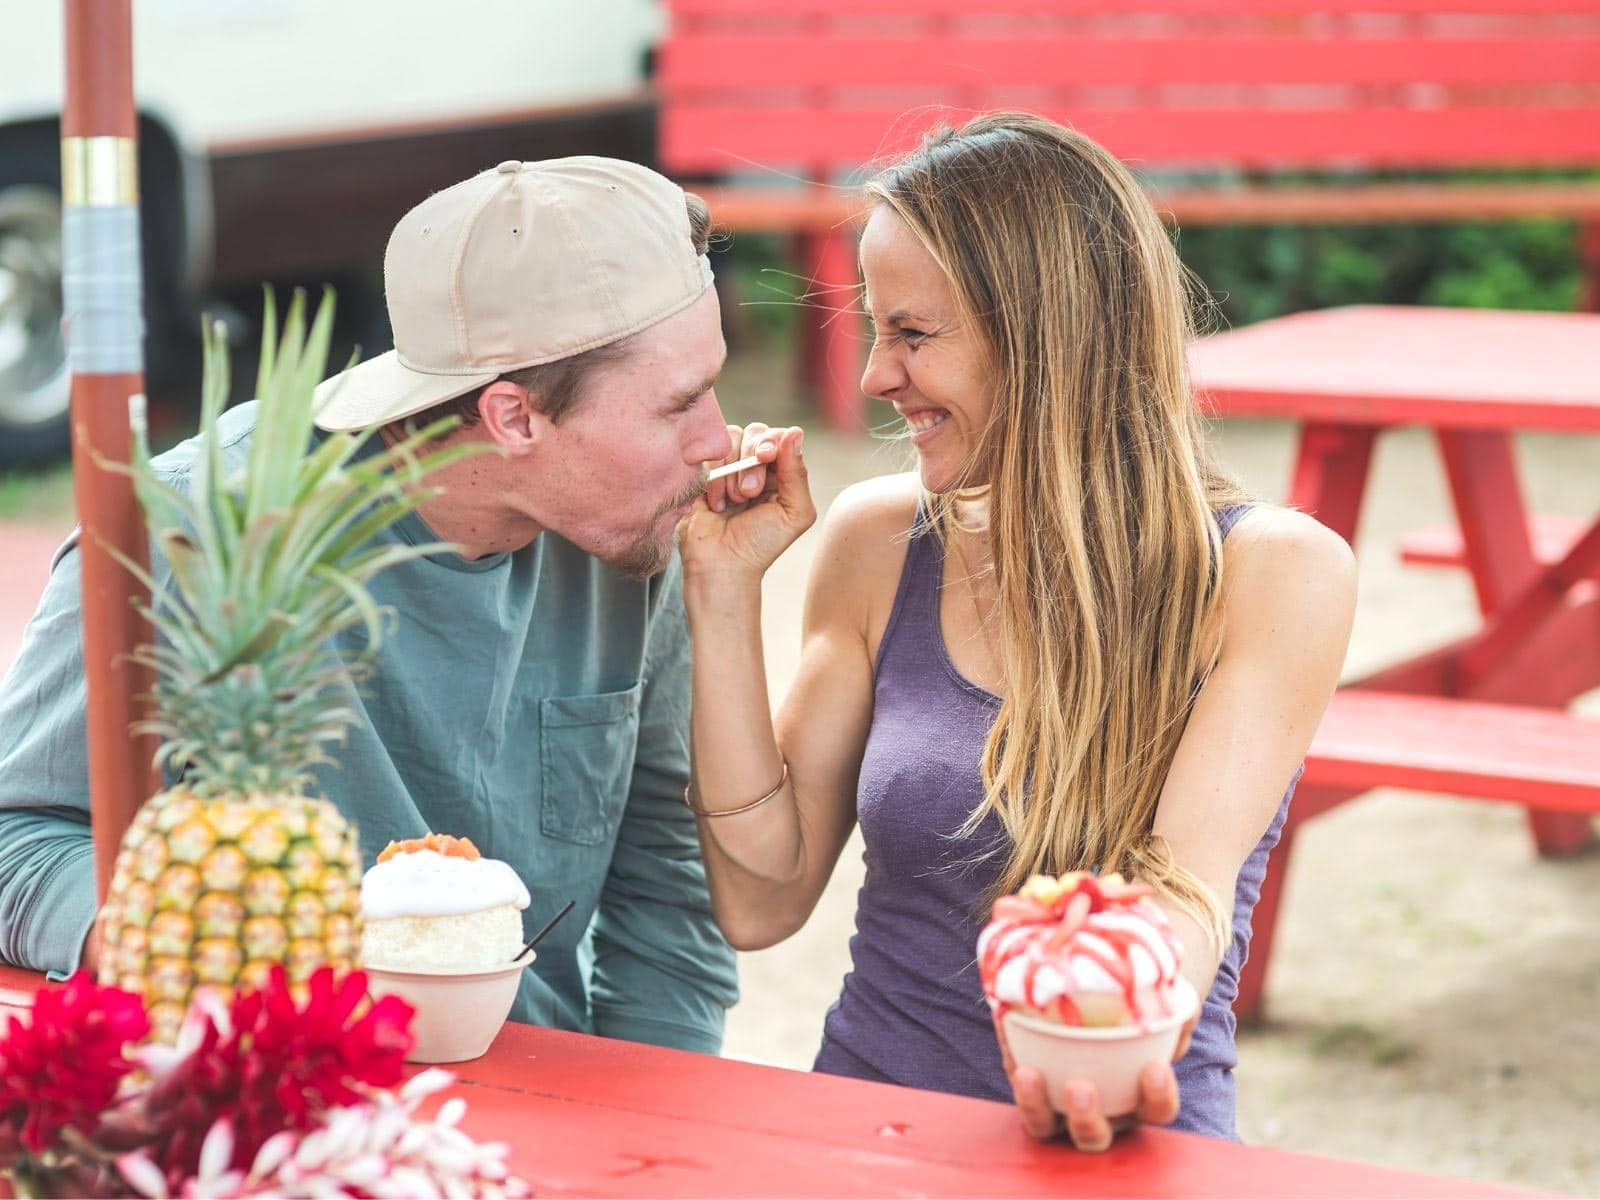 There are so many romantic things to do in Maui for couples!